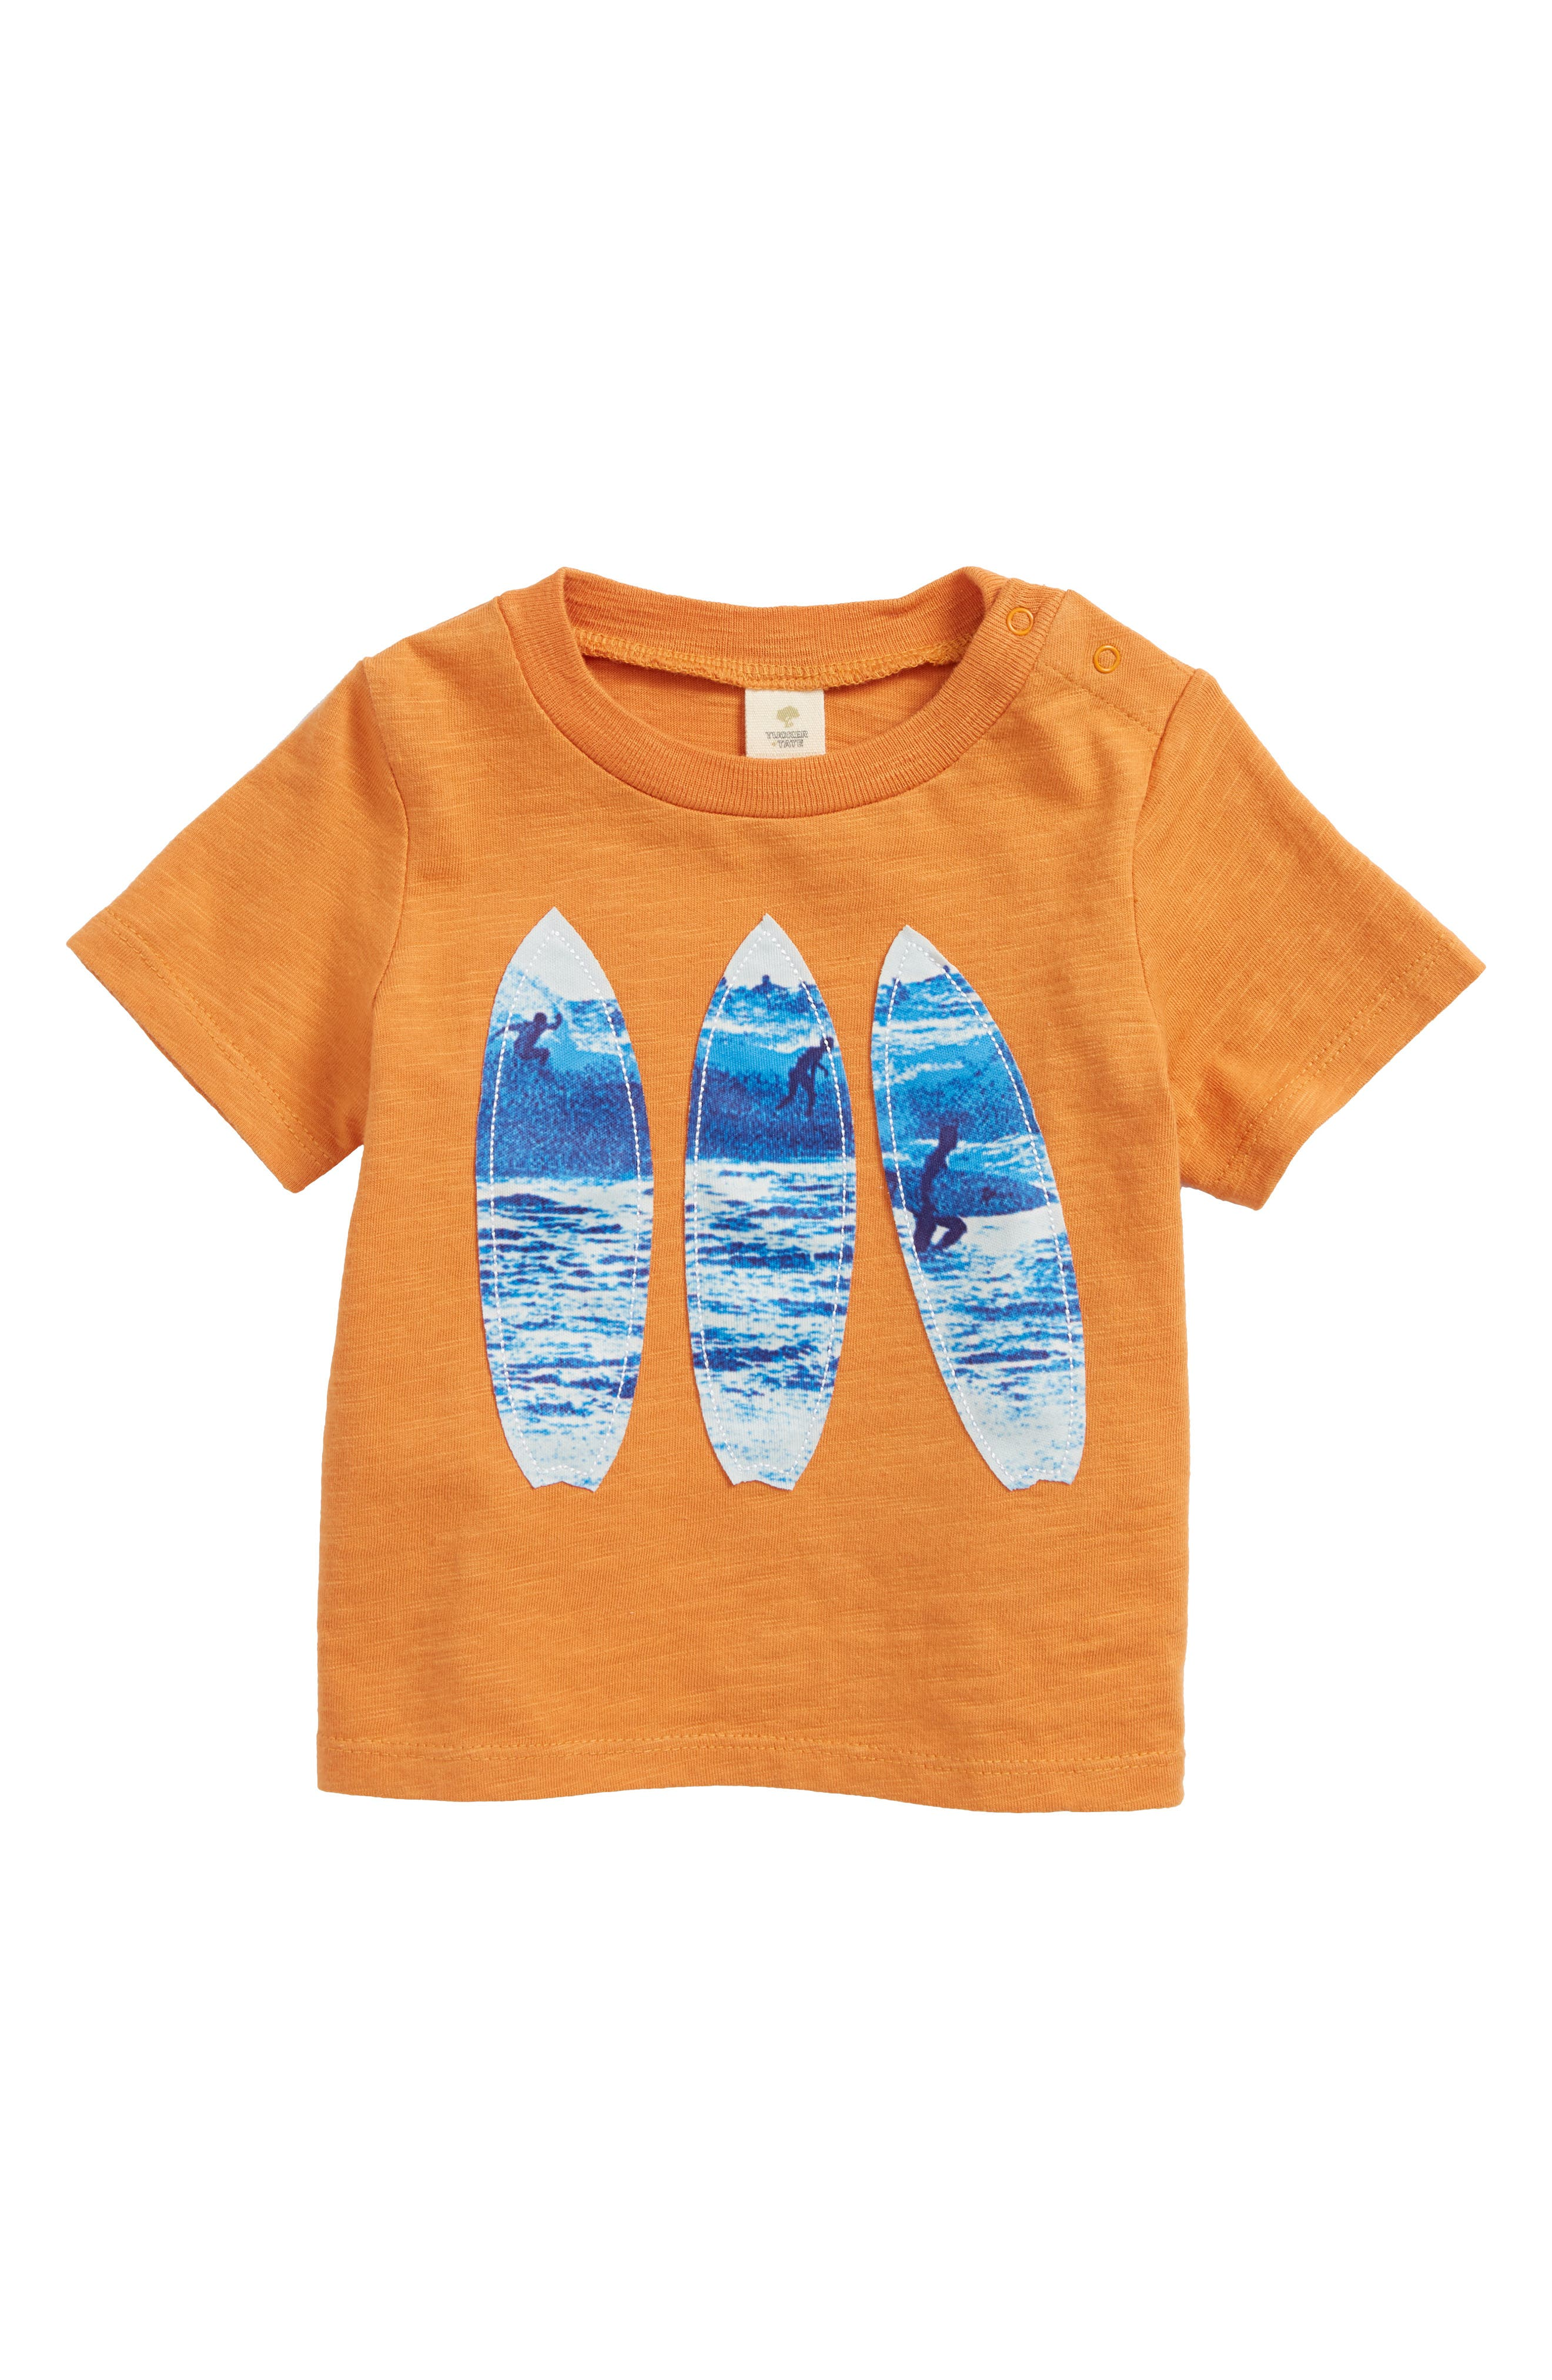 Alternate Image 1 Selected - Tucker + Tate Surfboard Appliqué T-Shirt (Baby)